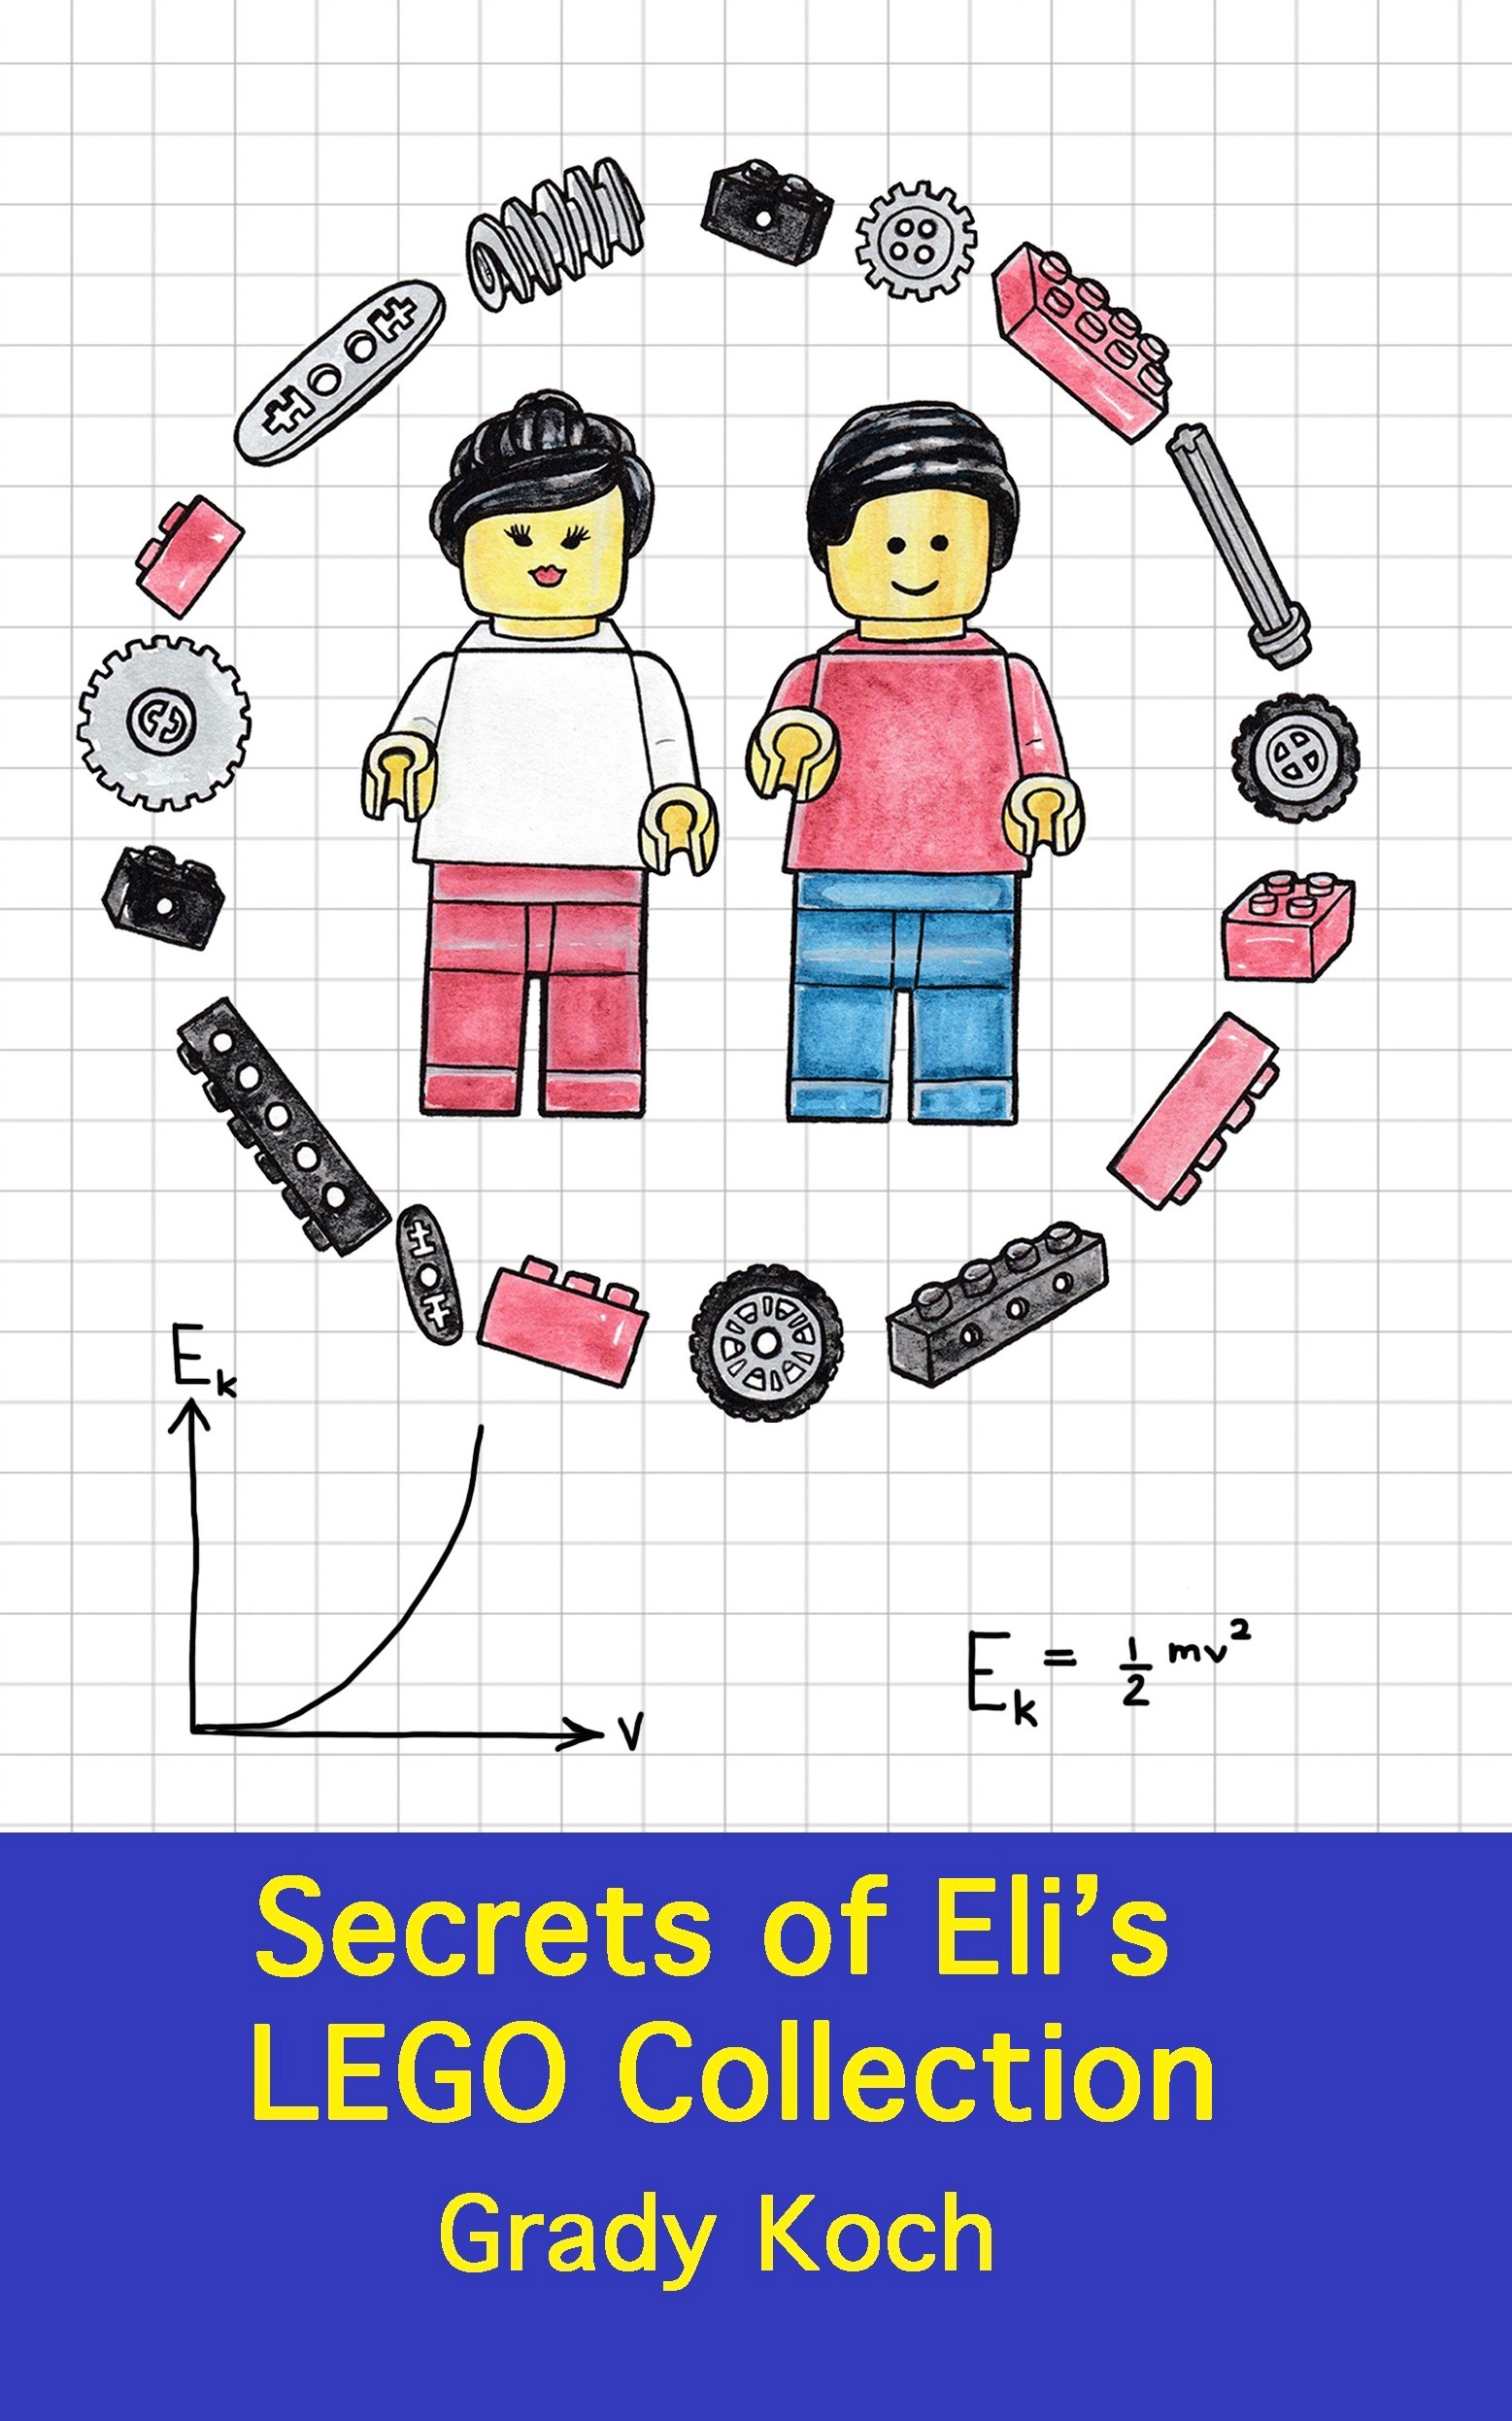 Secrets of Eli's LEGO Collection